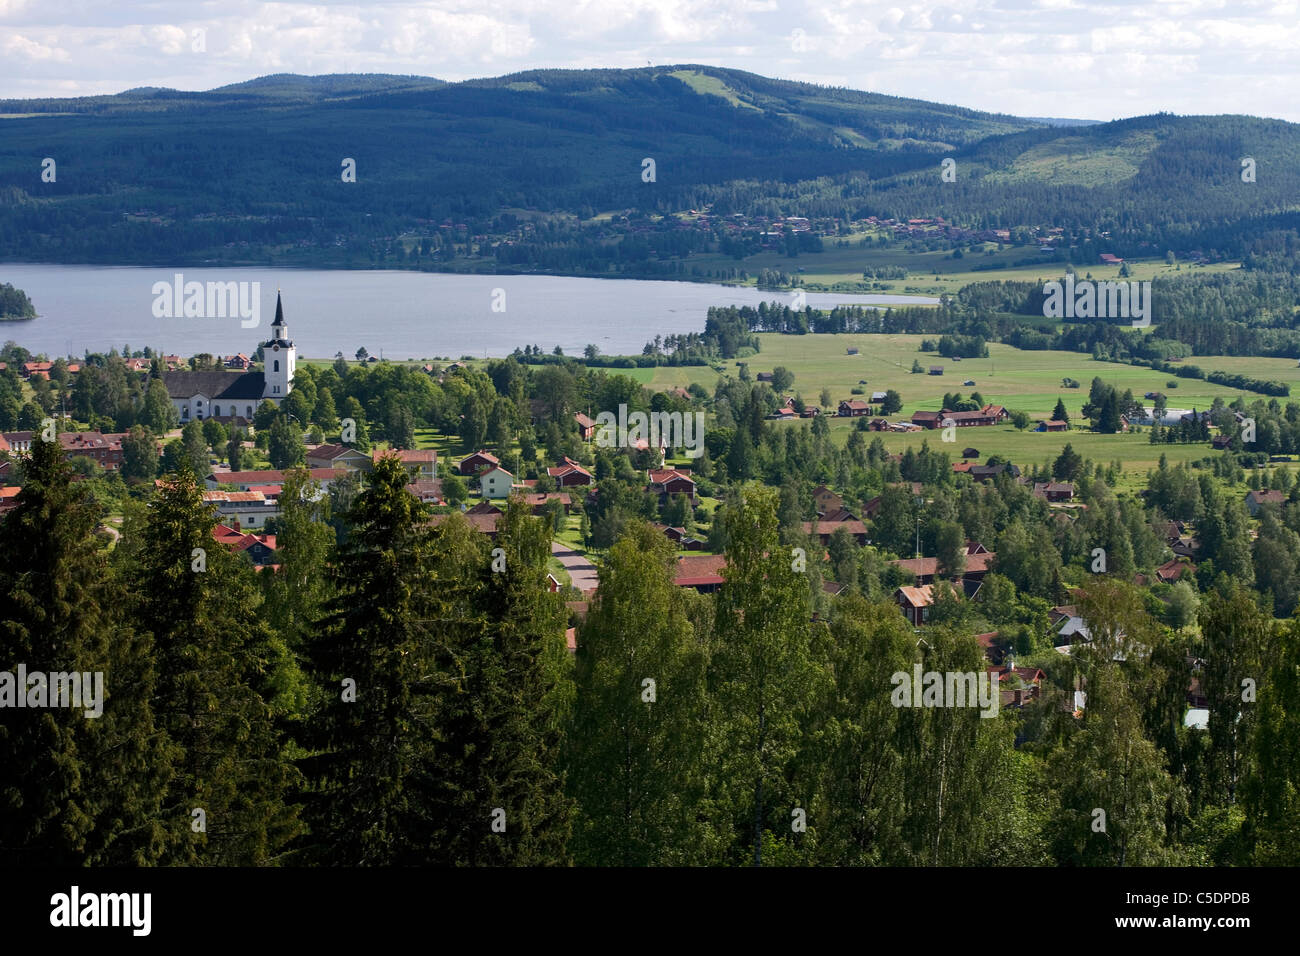 Overview of trees with houses by peaceful lake and mountains in background at Dalarna, Sweden - Stock Image